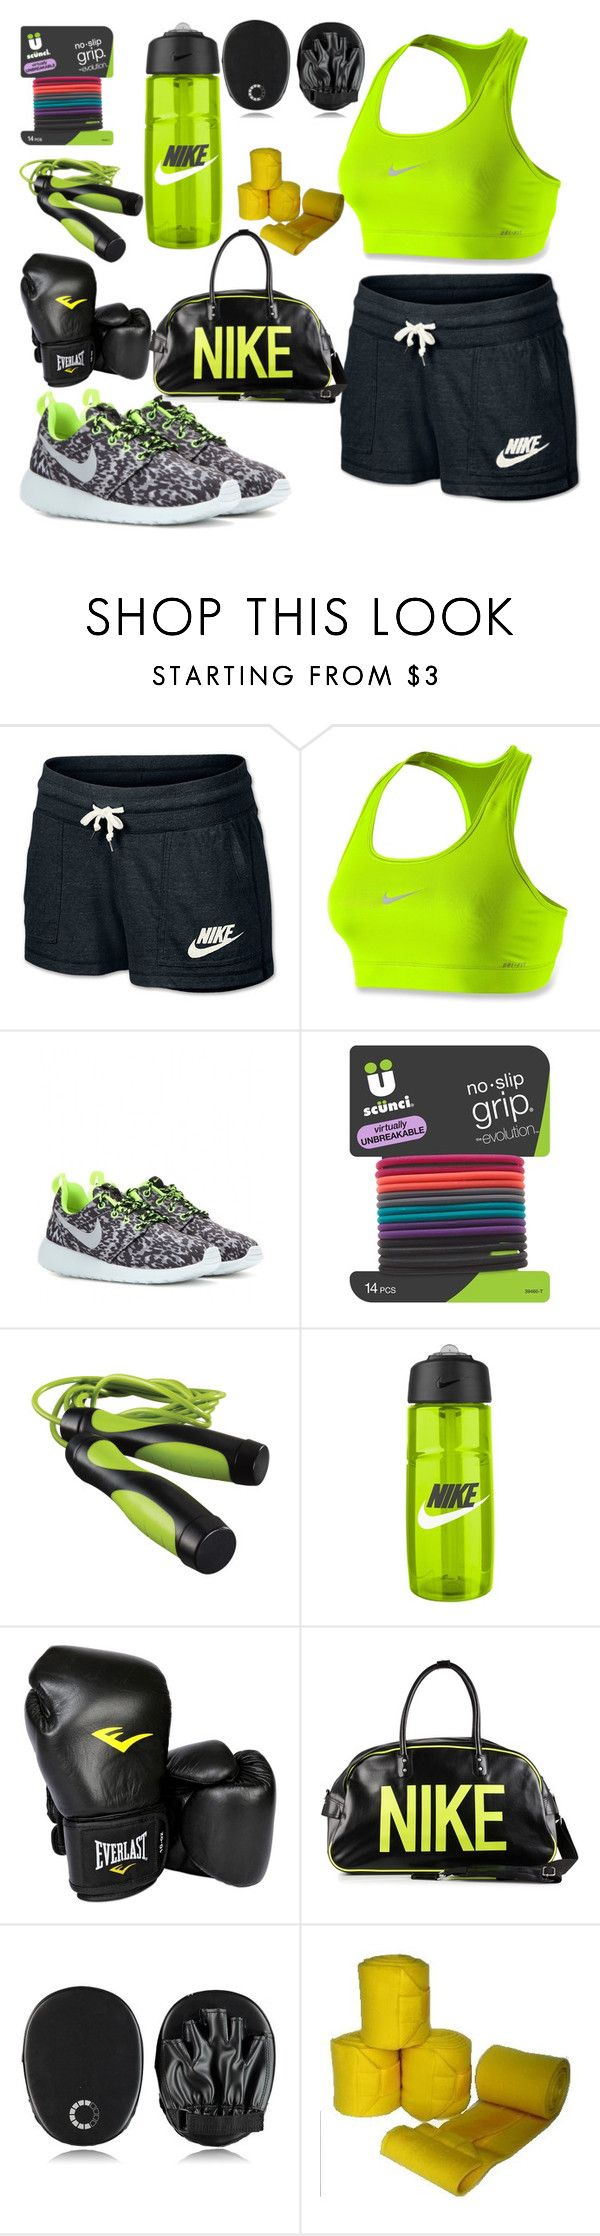 """Boxing outfit"" by fashion-luver-unillama ❤ liked on Polyvore featuring NIKE, scunci, Everlast and Casall"